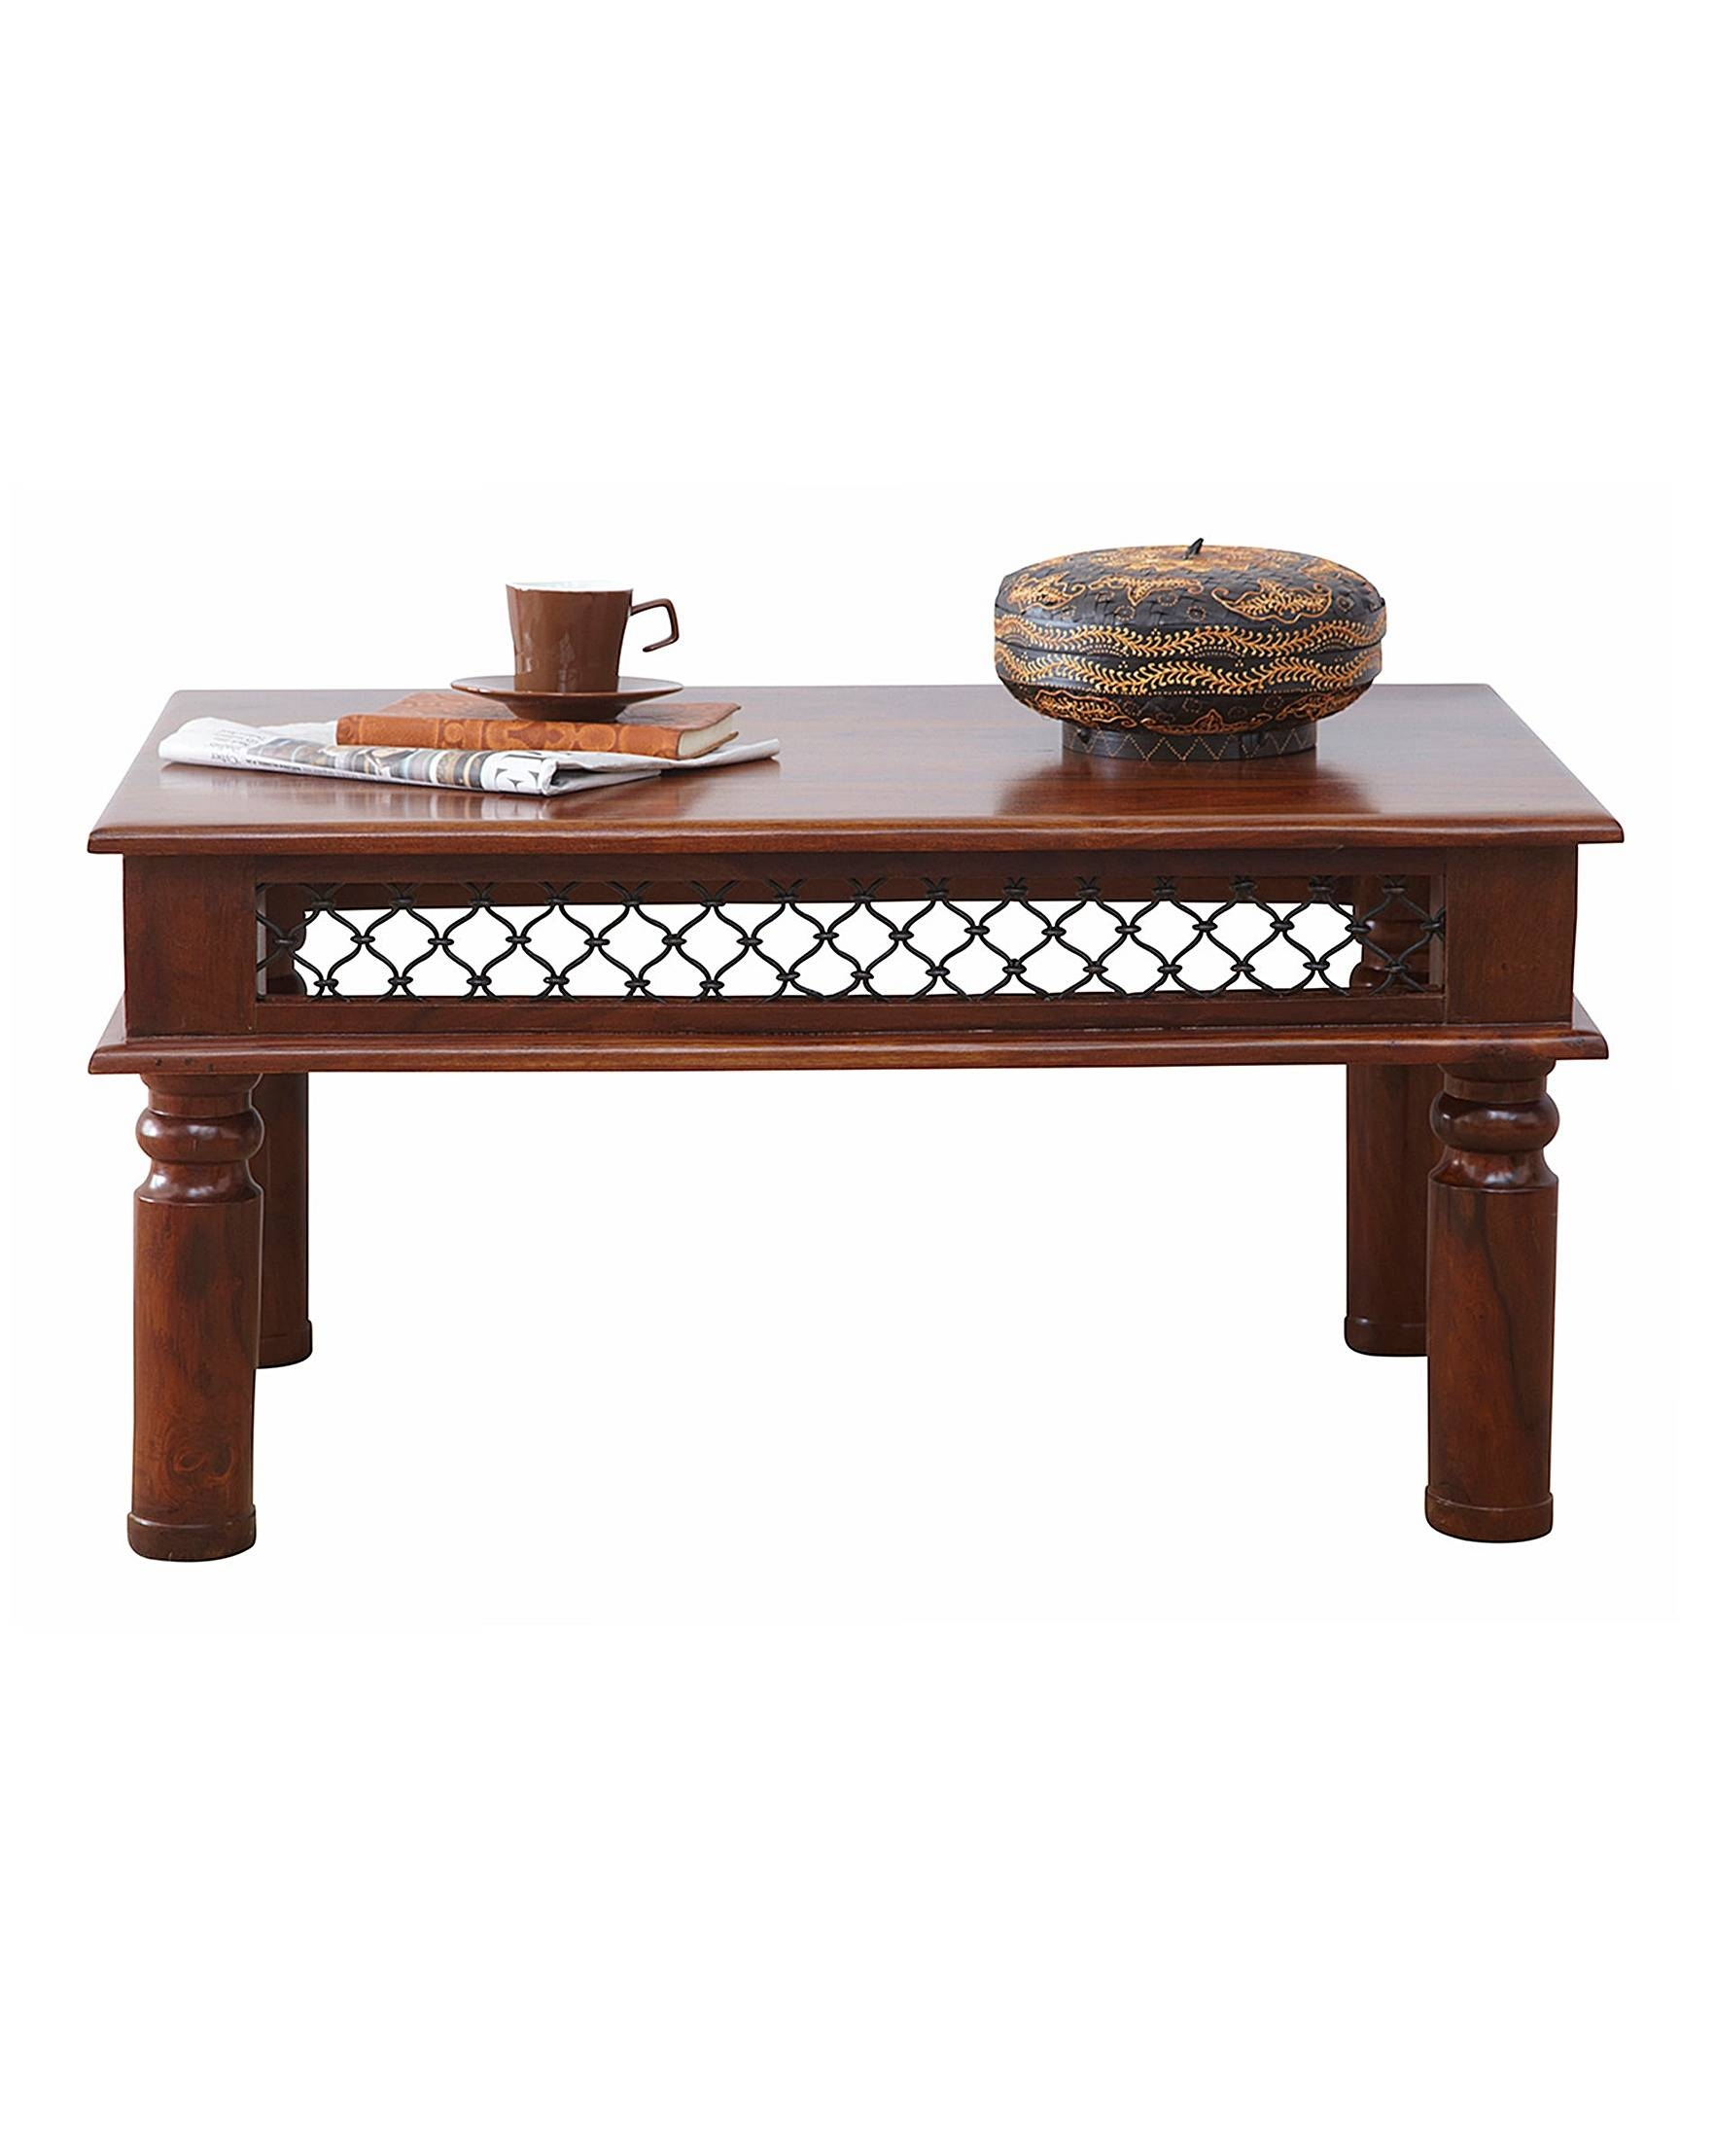 Jaipur Solid Sheesham Wood Coffee Table | J D Williams throughout Jaipur Sheesham Coffee Tables (Image 18 of 30)